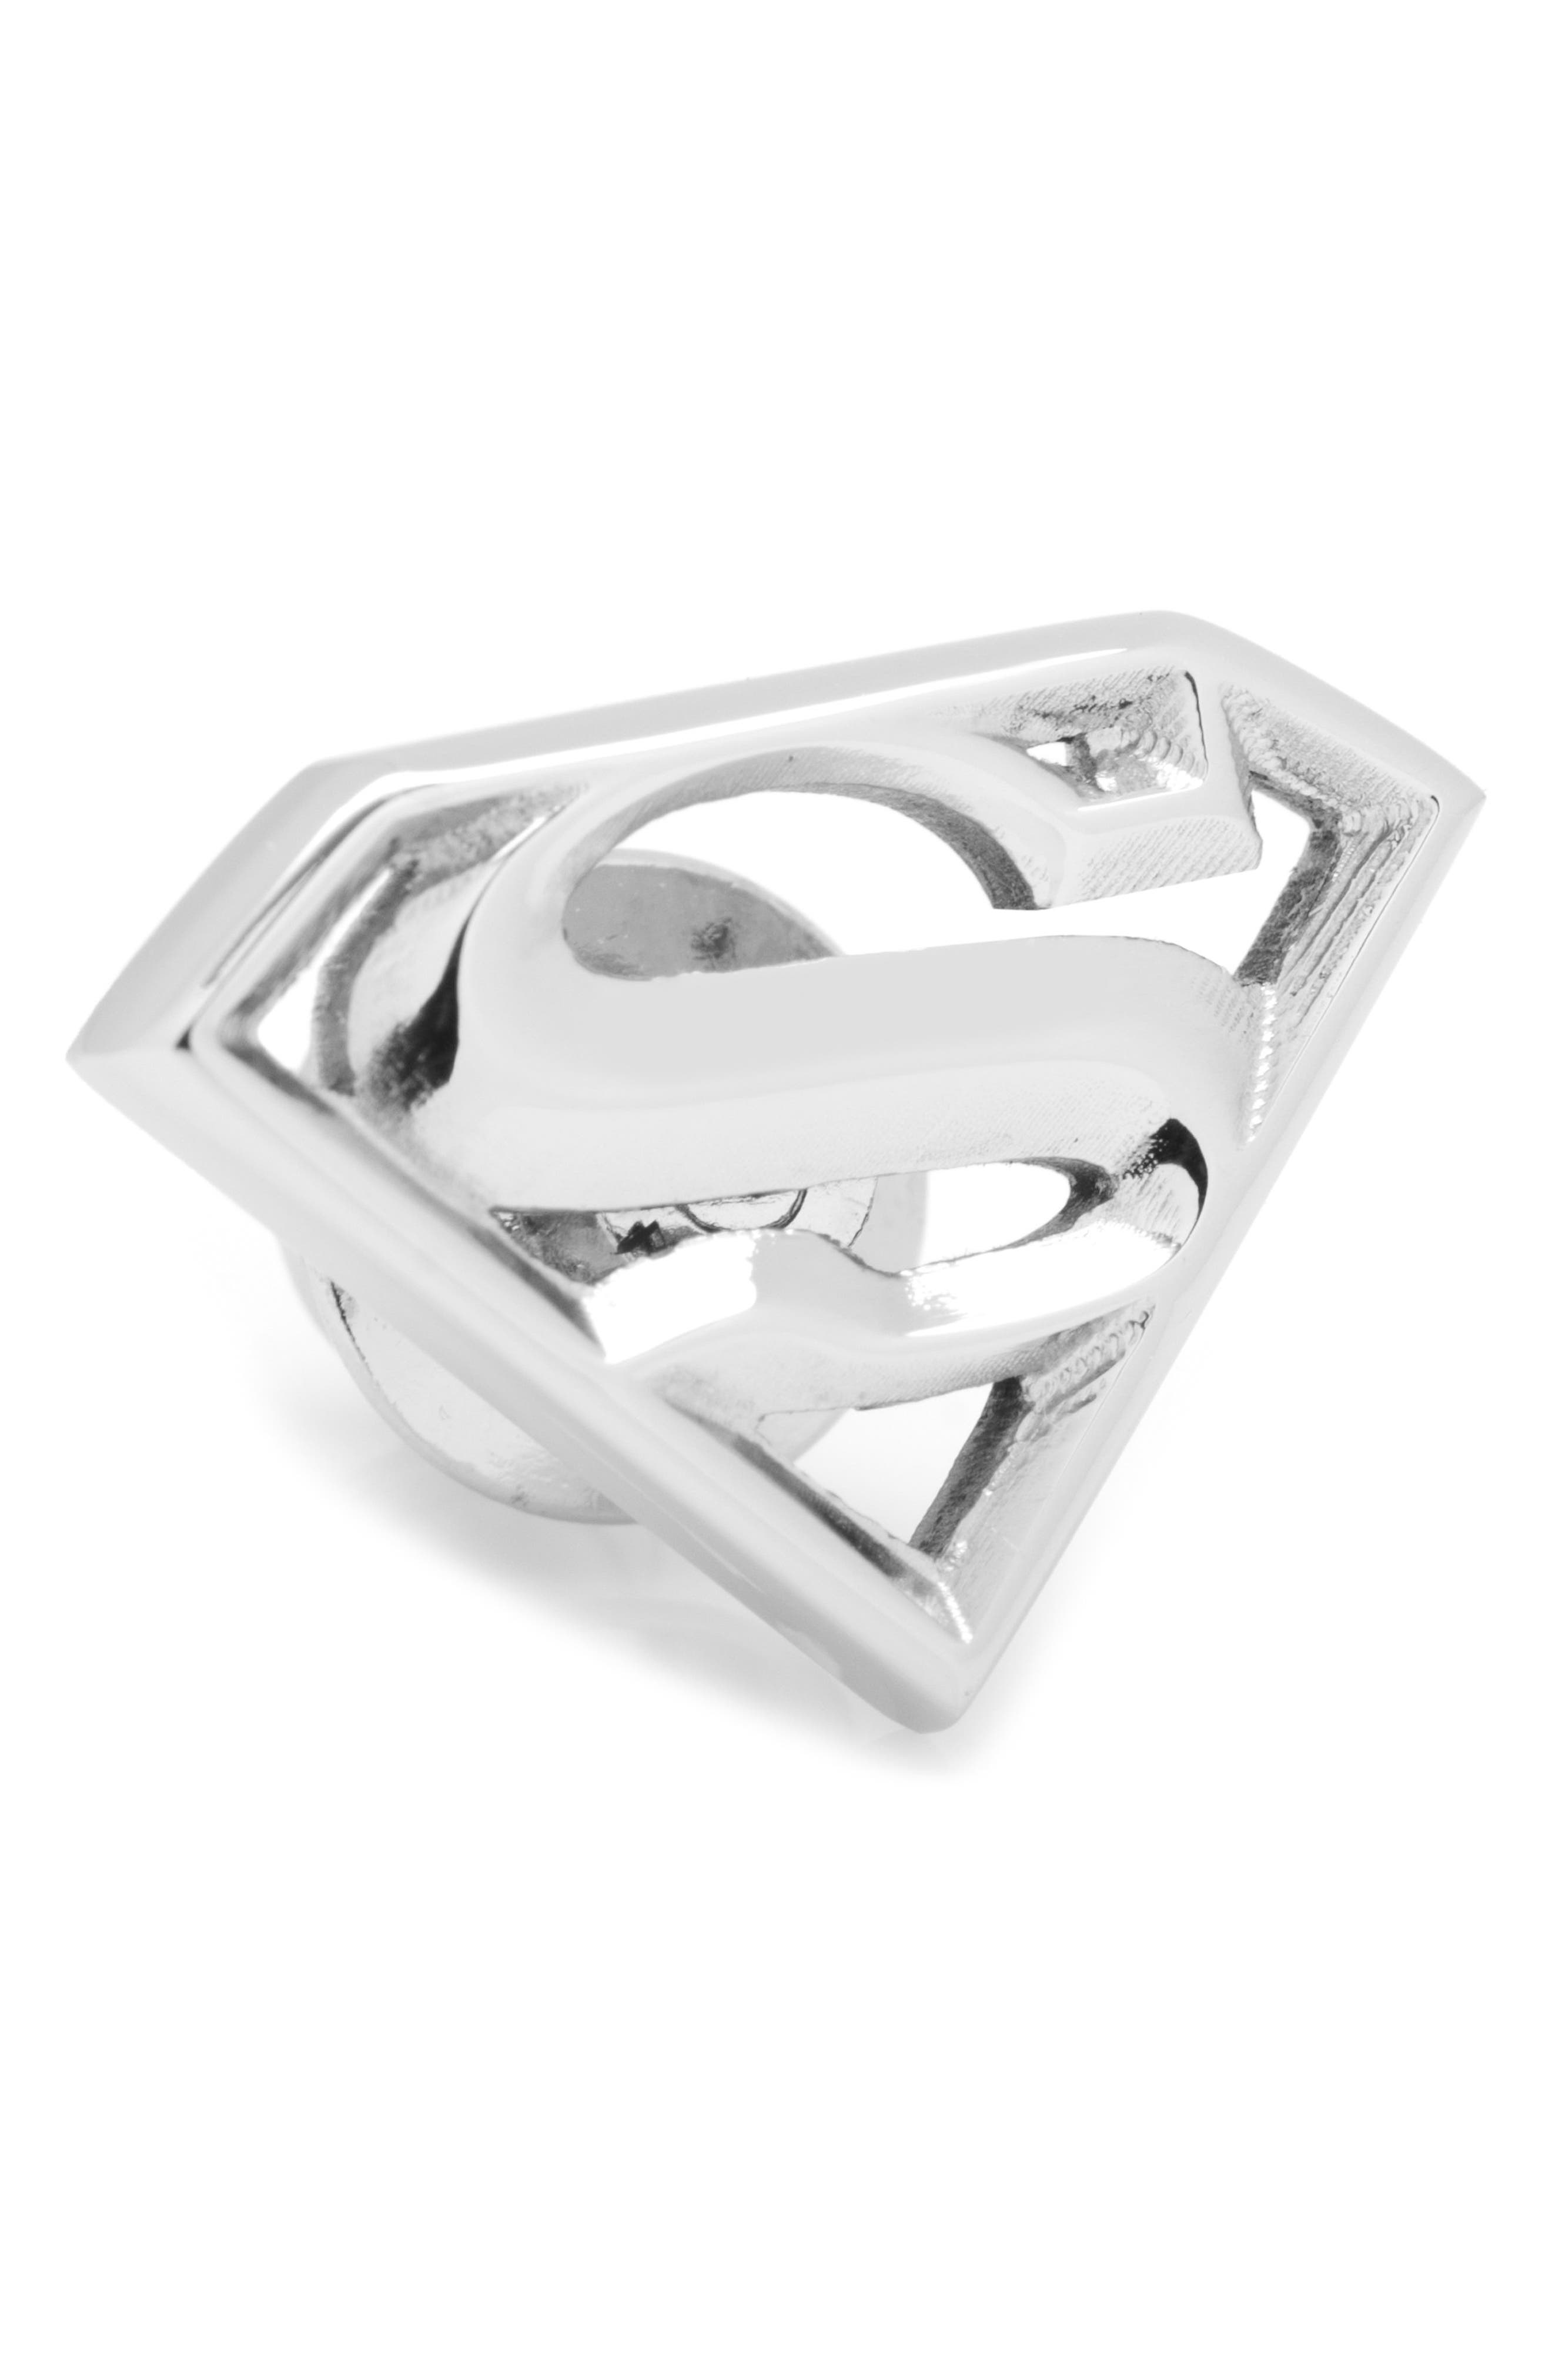 Superman Lapel Pin,                             Main thumbnail 1, color,                             Silver